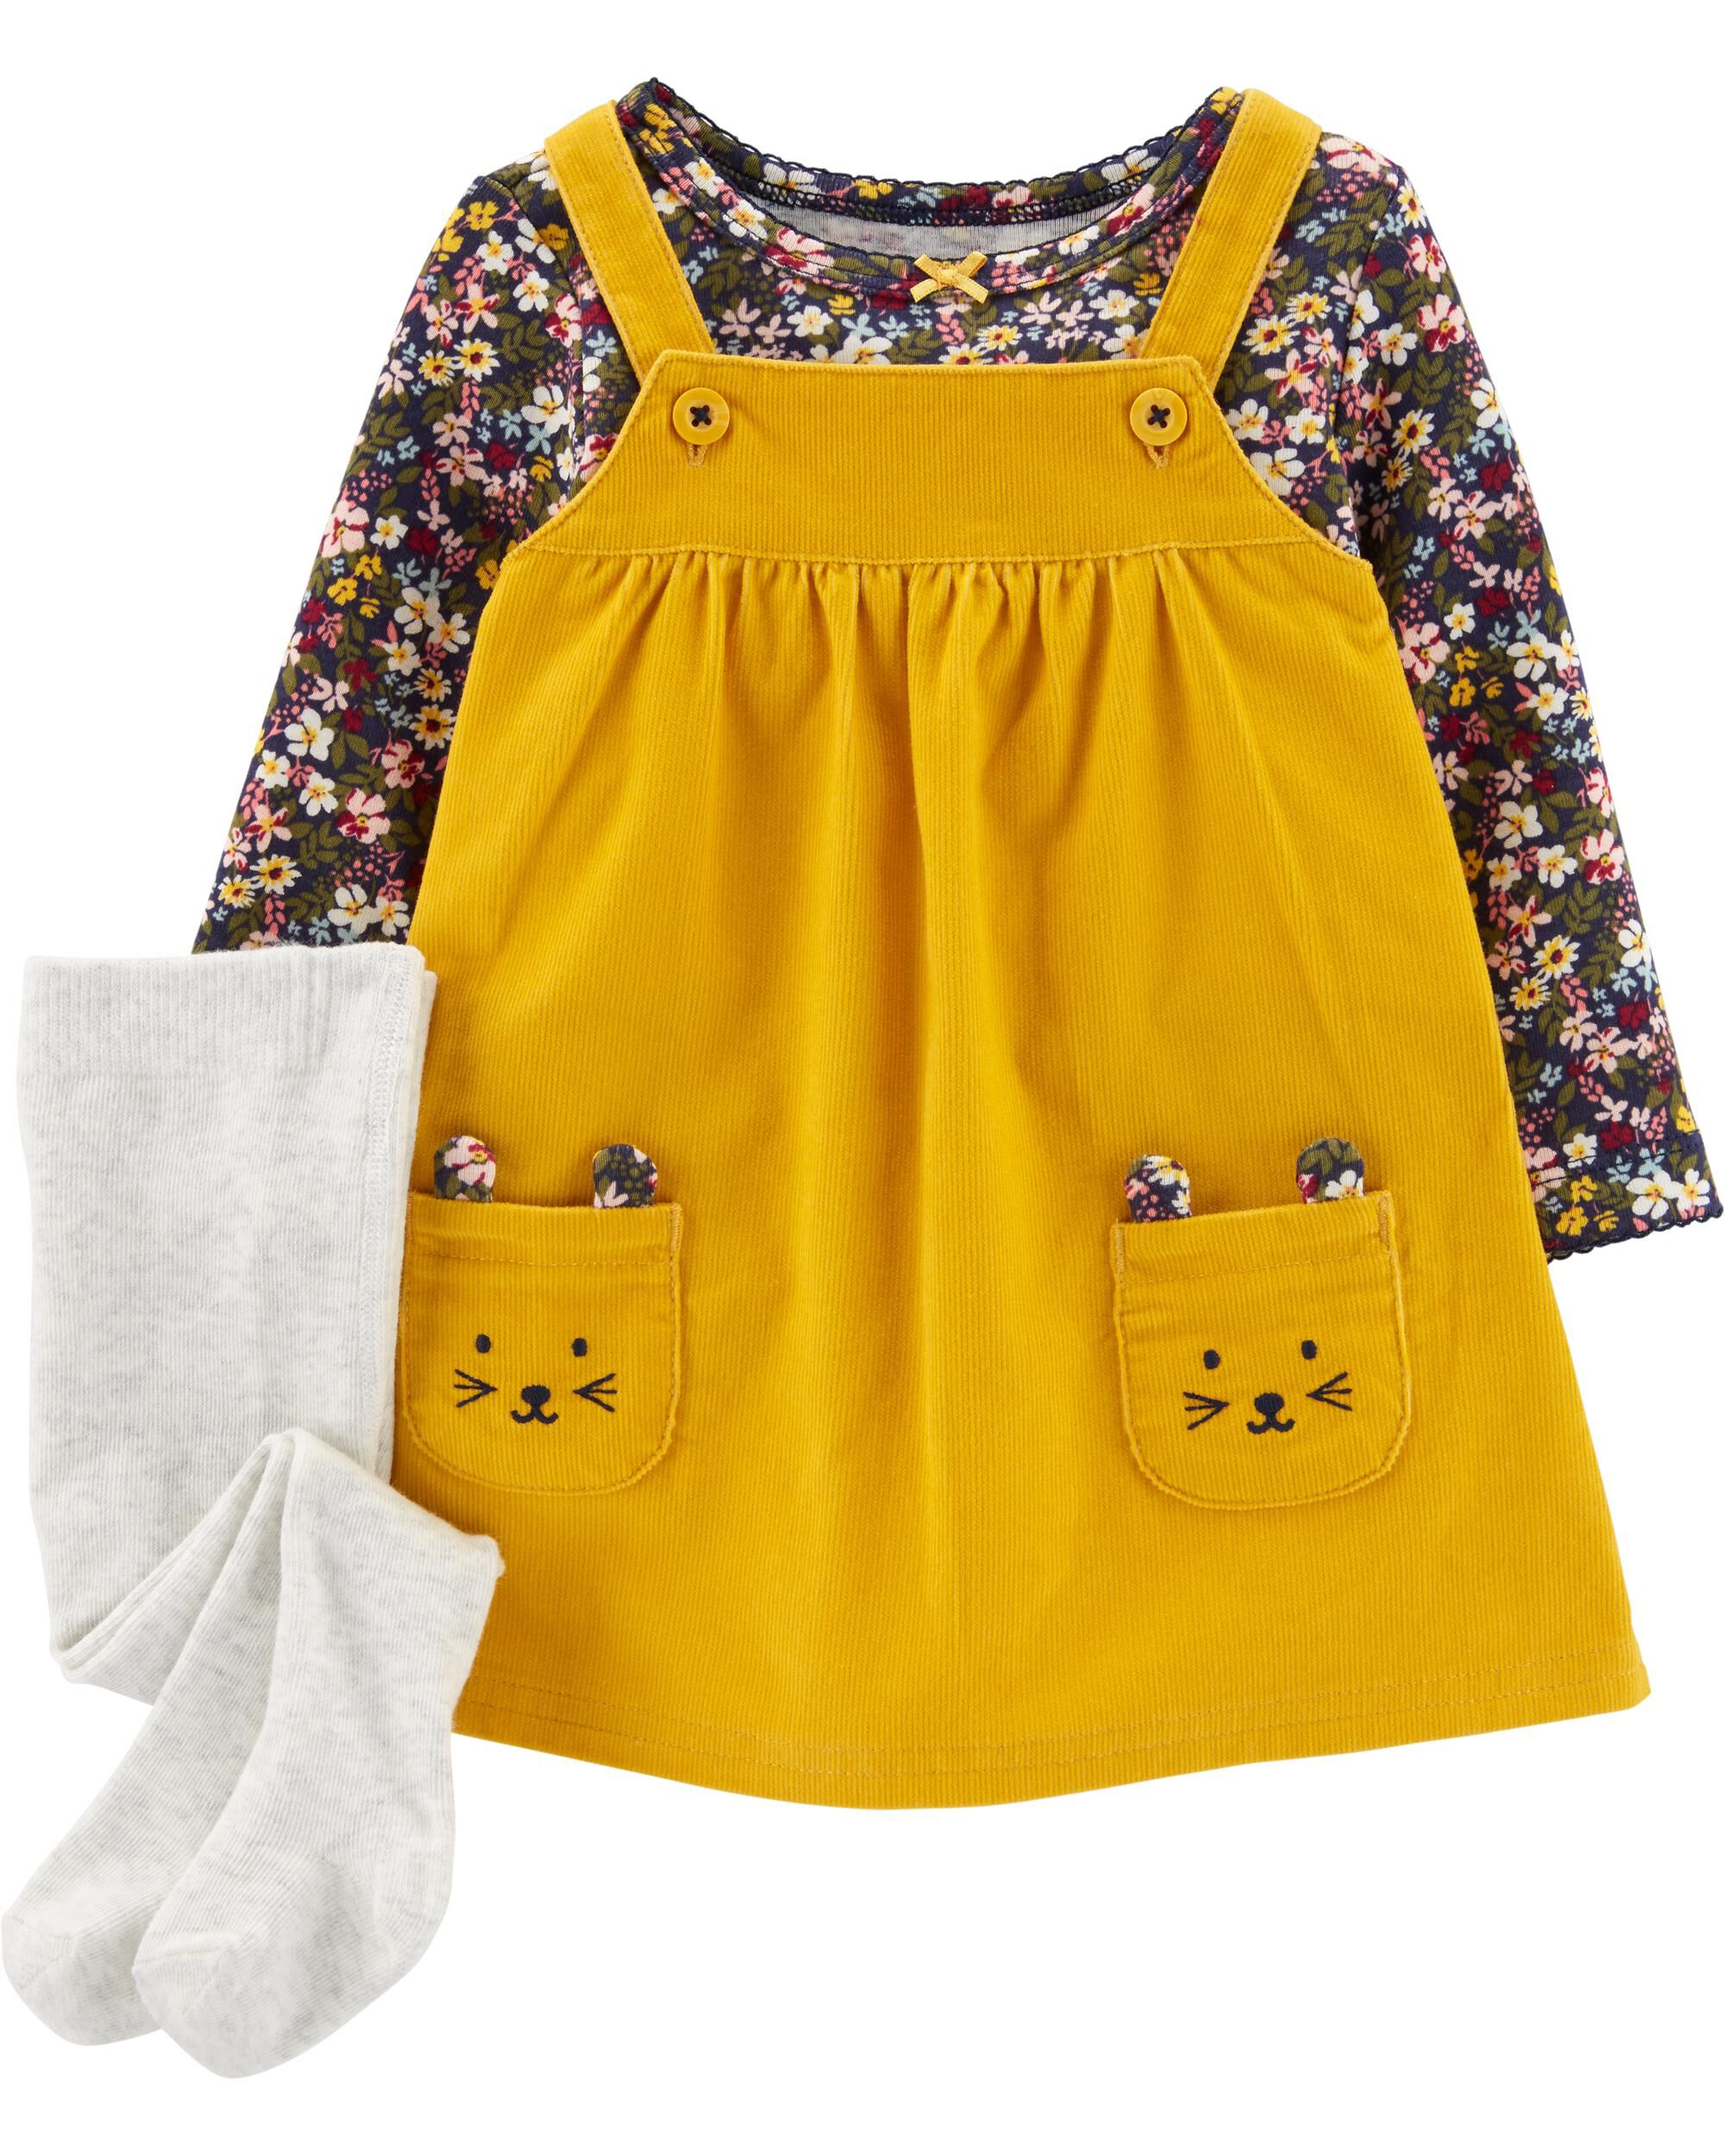 Asisol Baby Girls Shorts Sets Infant Girl White Lace Tank Tops Dots Yellow Short Pants 2pcs Summer Outfit